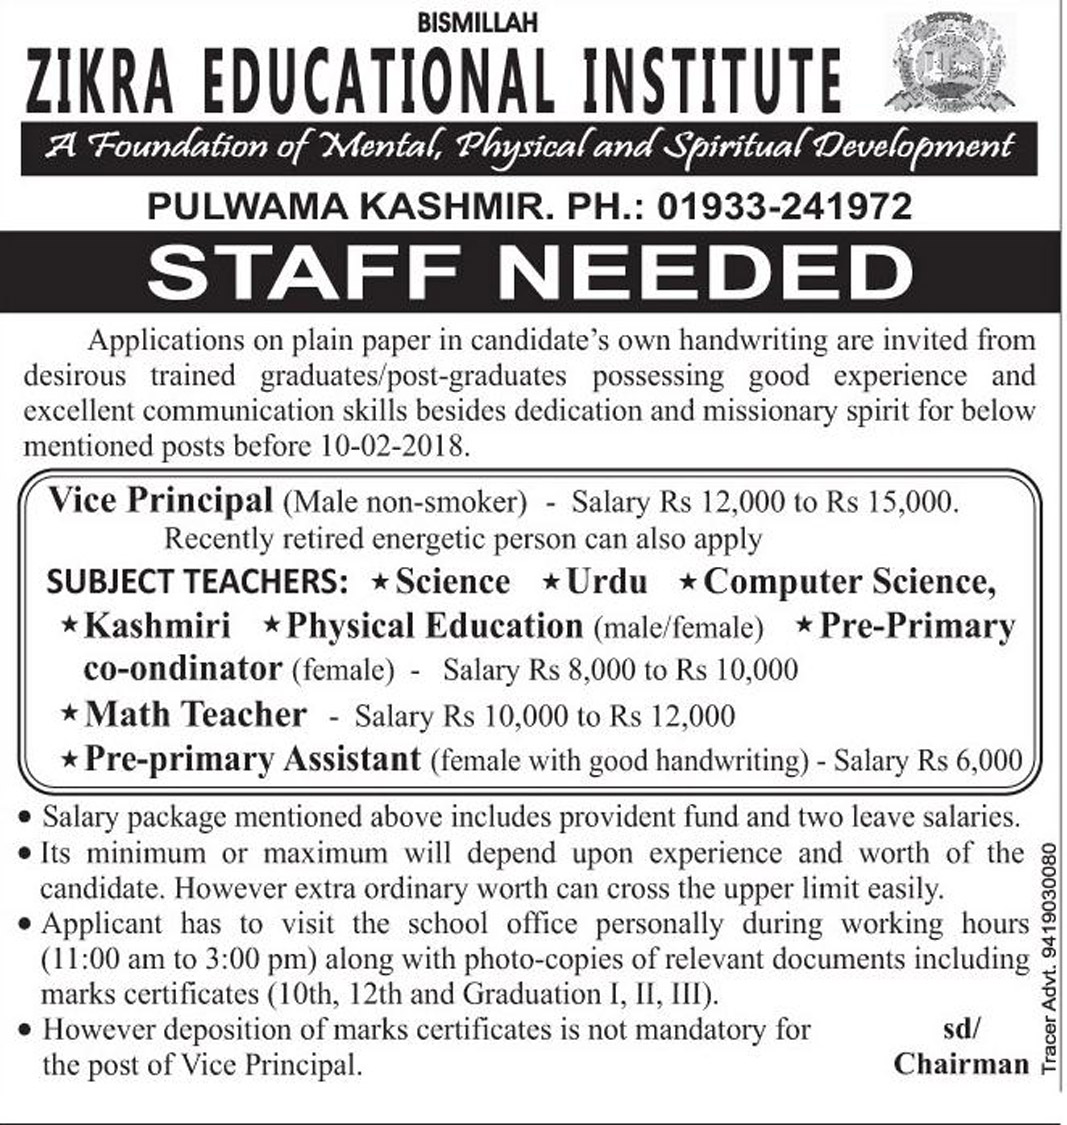 Zikra Educational Institute